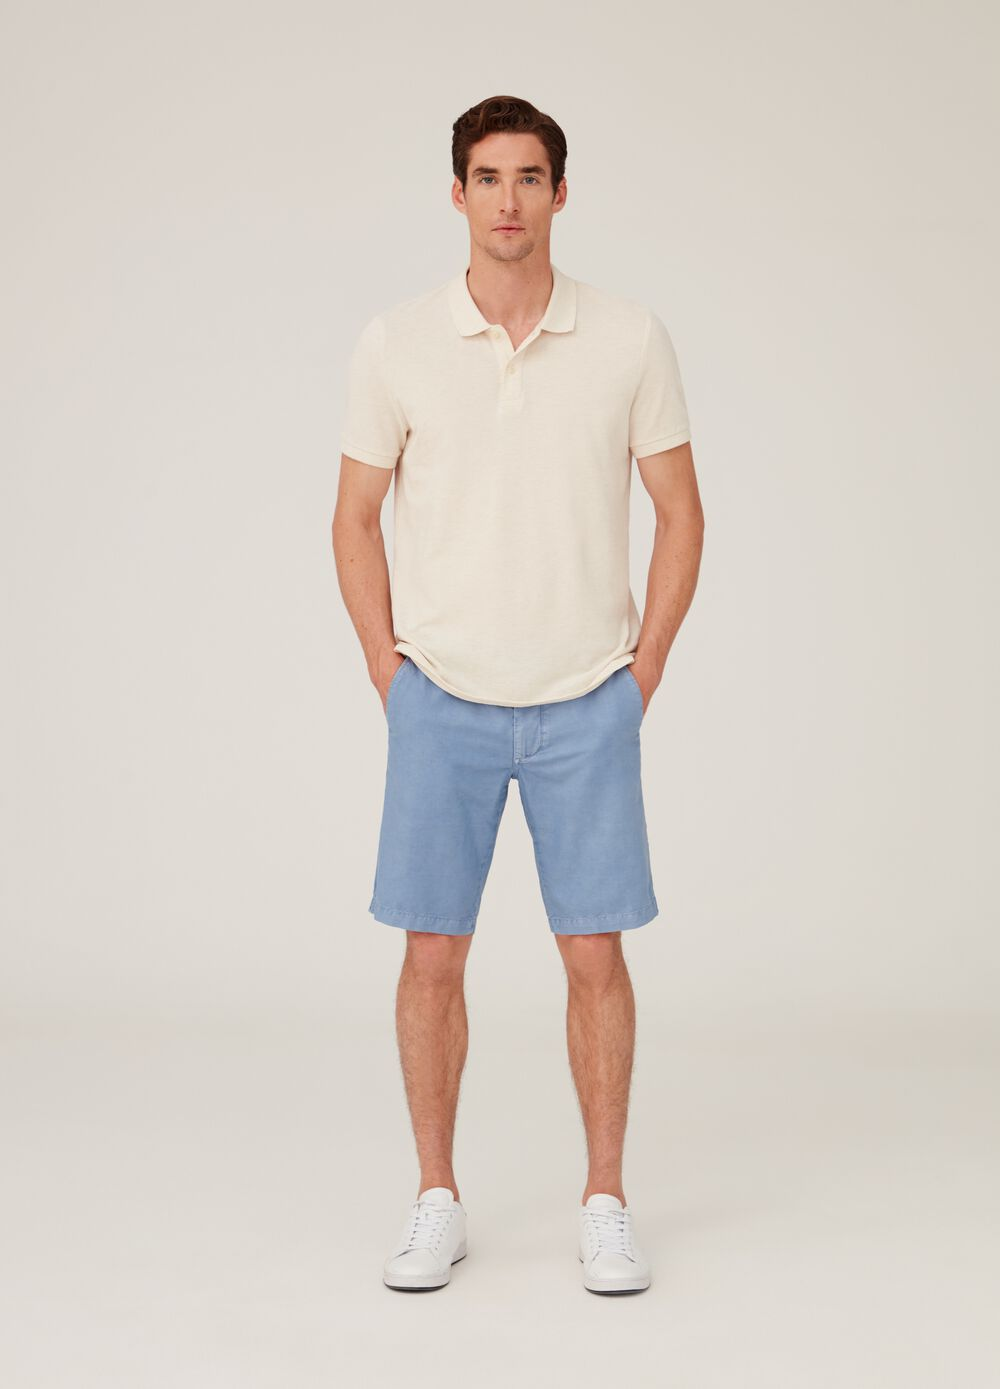 Cotton and linen chino shorts with pockets